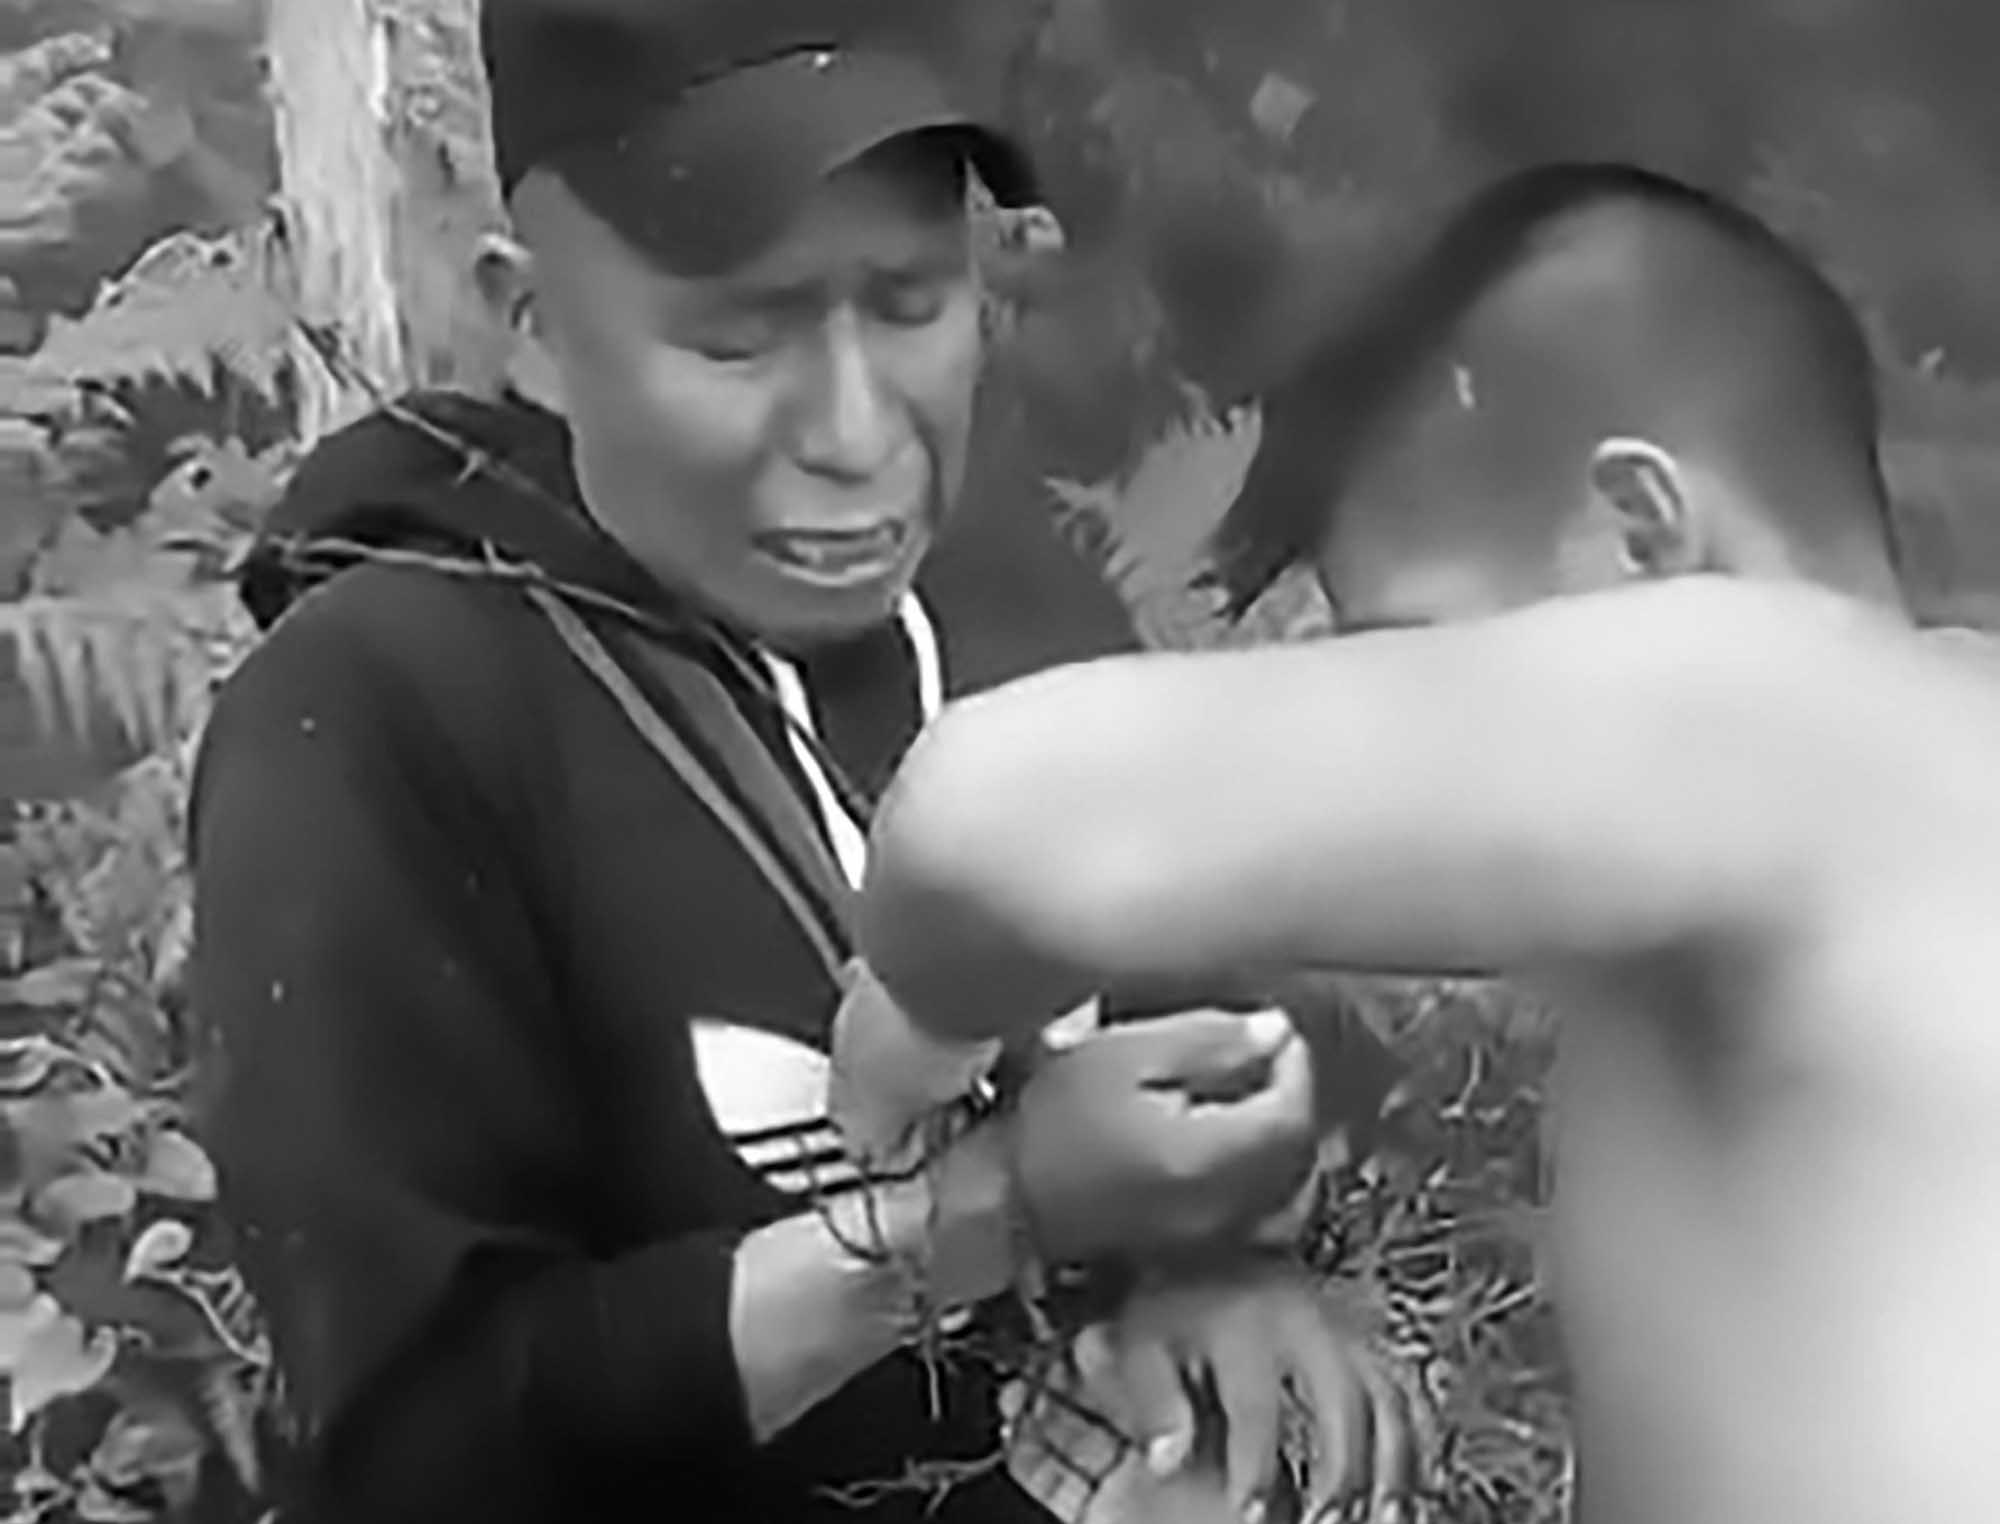 Indigenous Leader Tied Up With Barbed Wire And Tortured